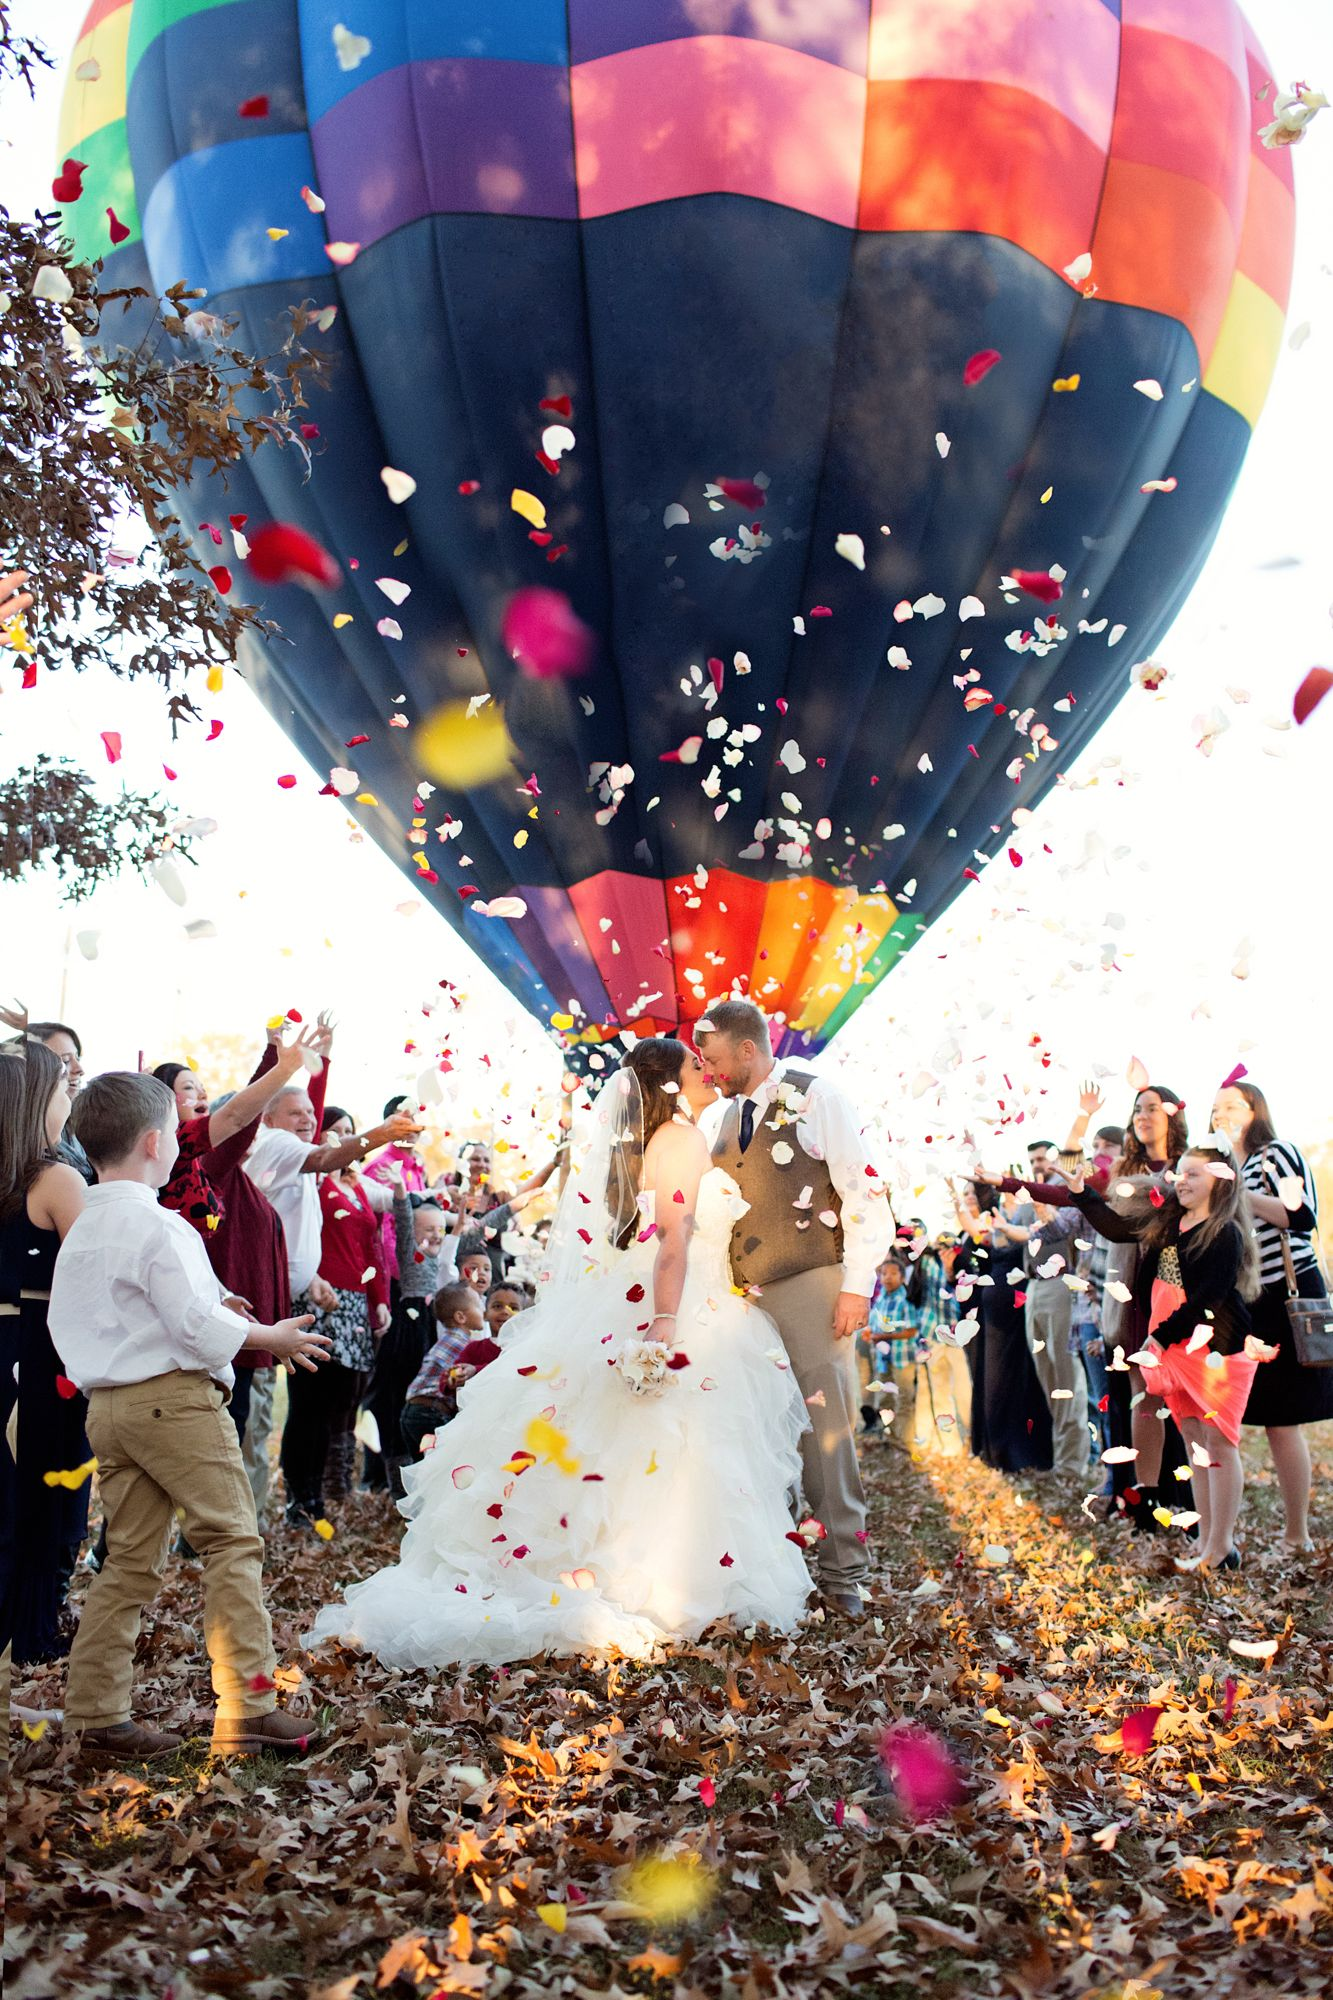 Wedding Engagement Photography Photos Hot Air Balloon Rose Petals